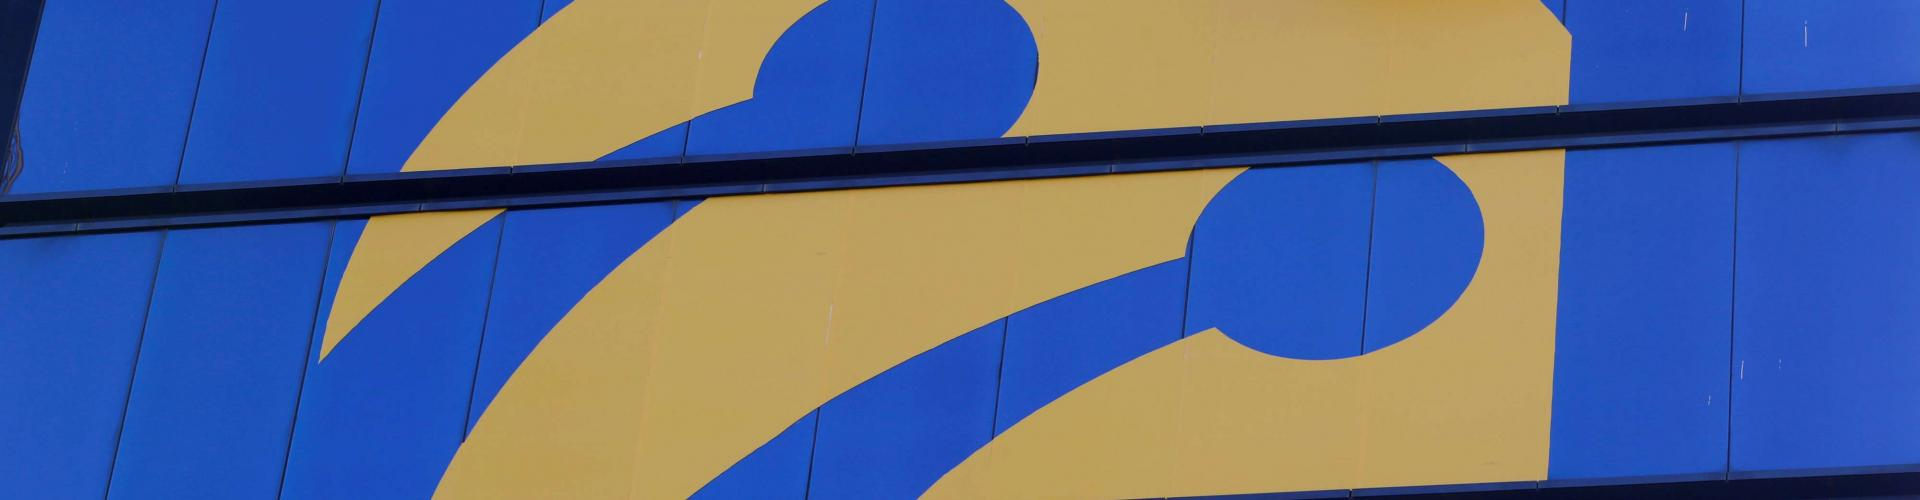 The logo of Turkcell on the Tat Towers in Istanbul, Turkey, June 29, 2016. REUTERS/Murad Sezer